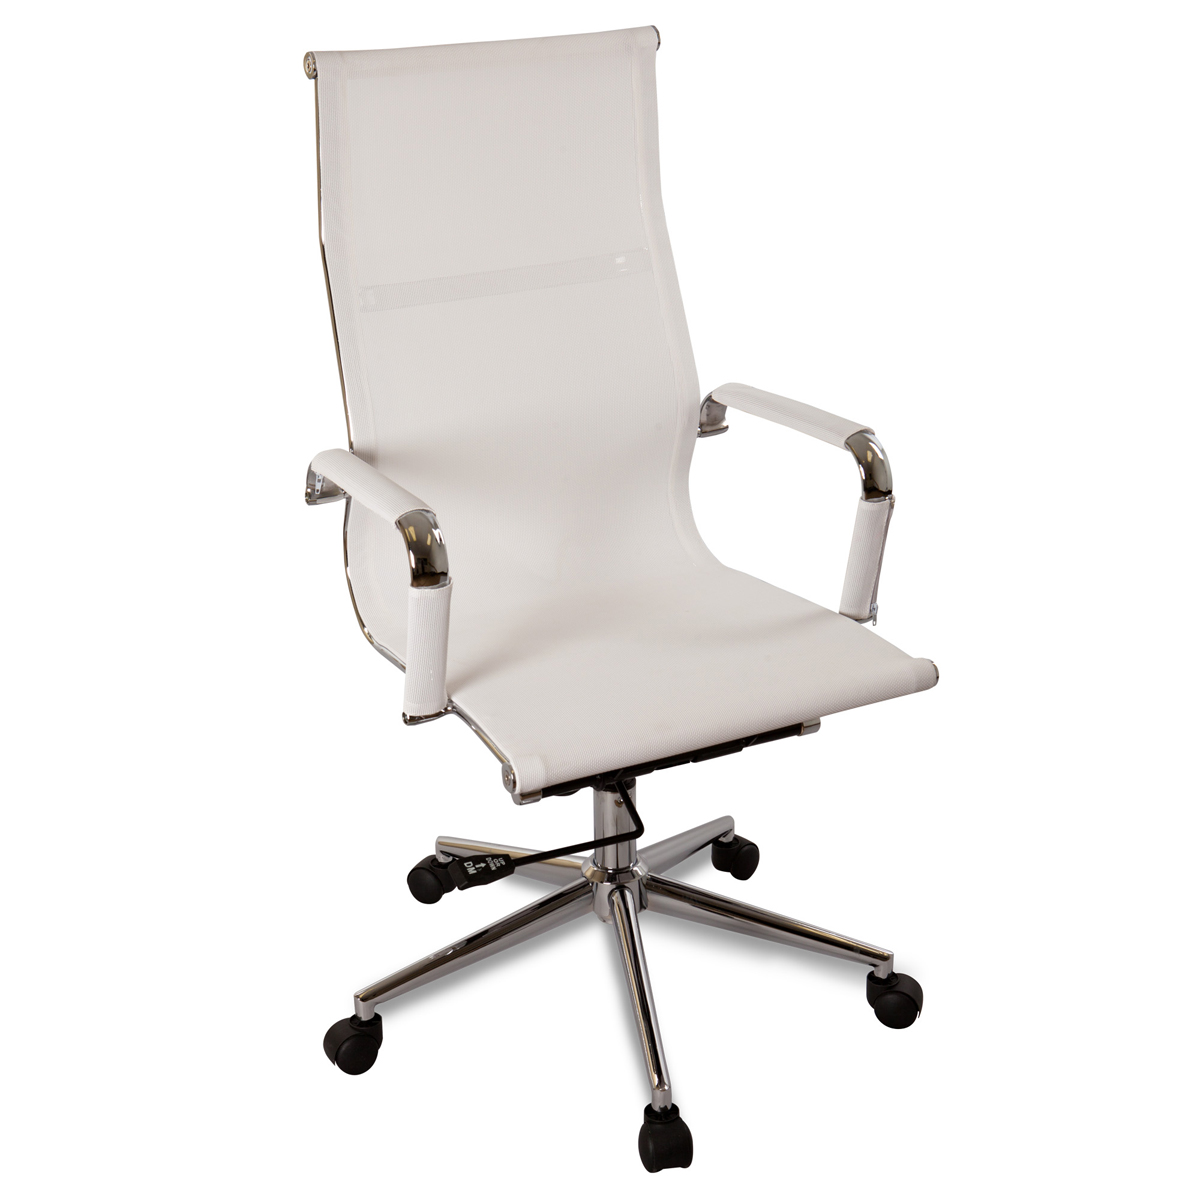 designer executive chair cover hire oxfordshire new white modern ergonomic mesh high back